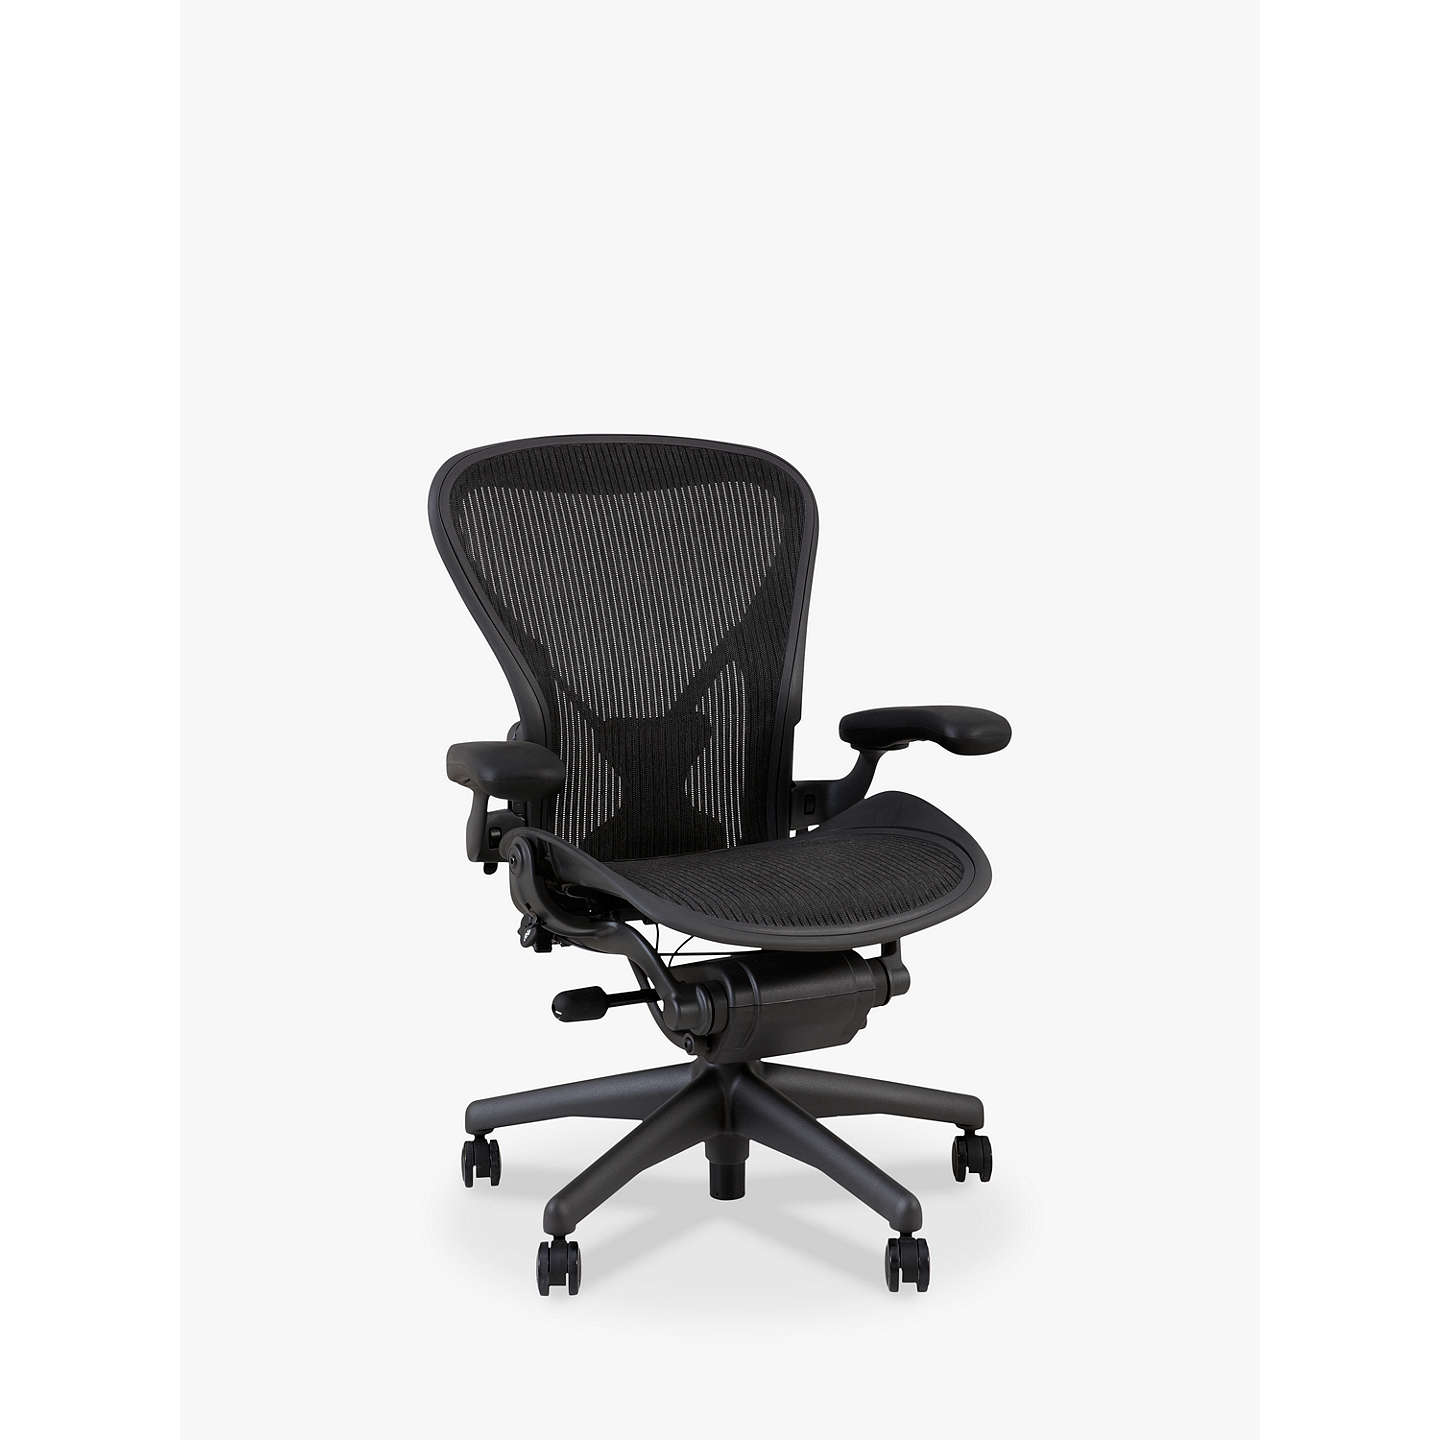 office chair picture. BuyHerman Miller Classic Aeron Office Chair, Size B, Graphite Online At Johnlewis.com Chair Picture